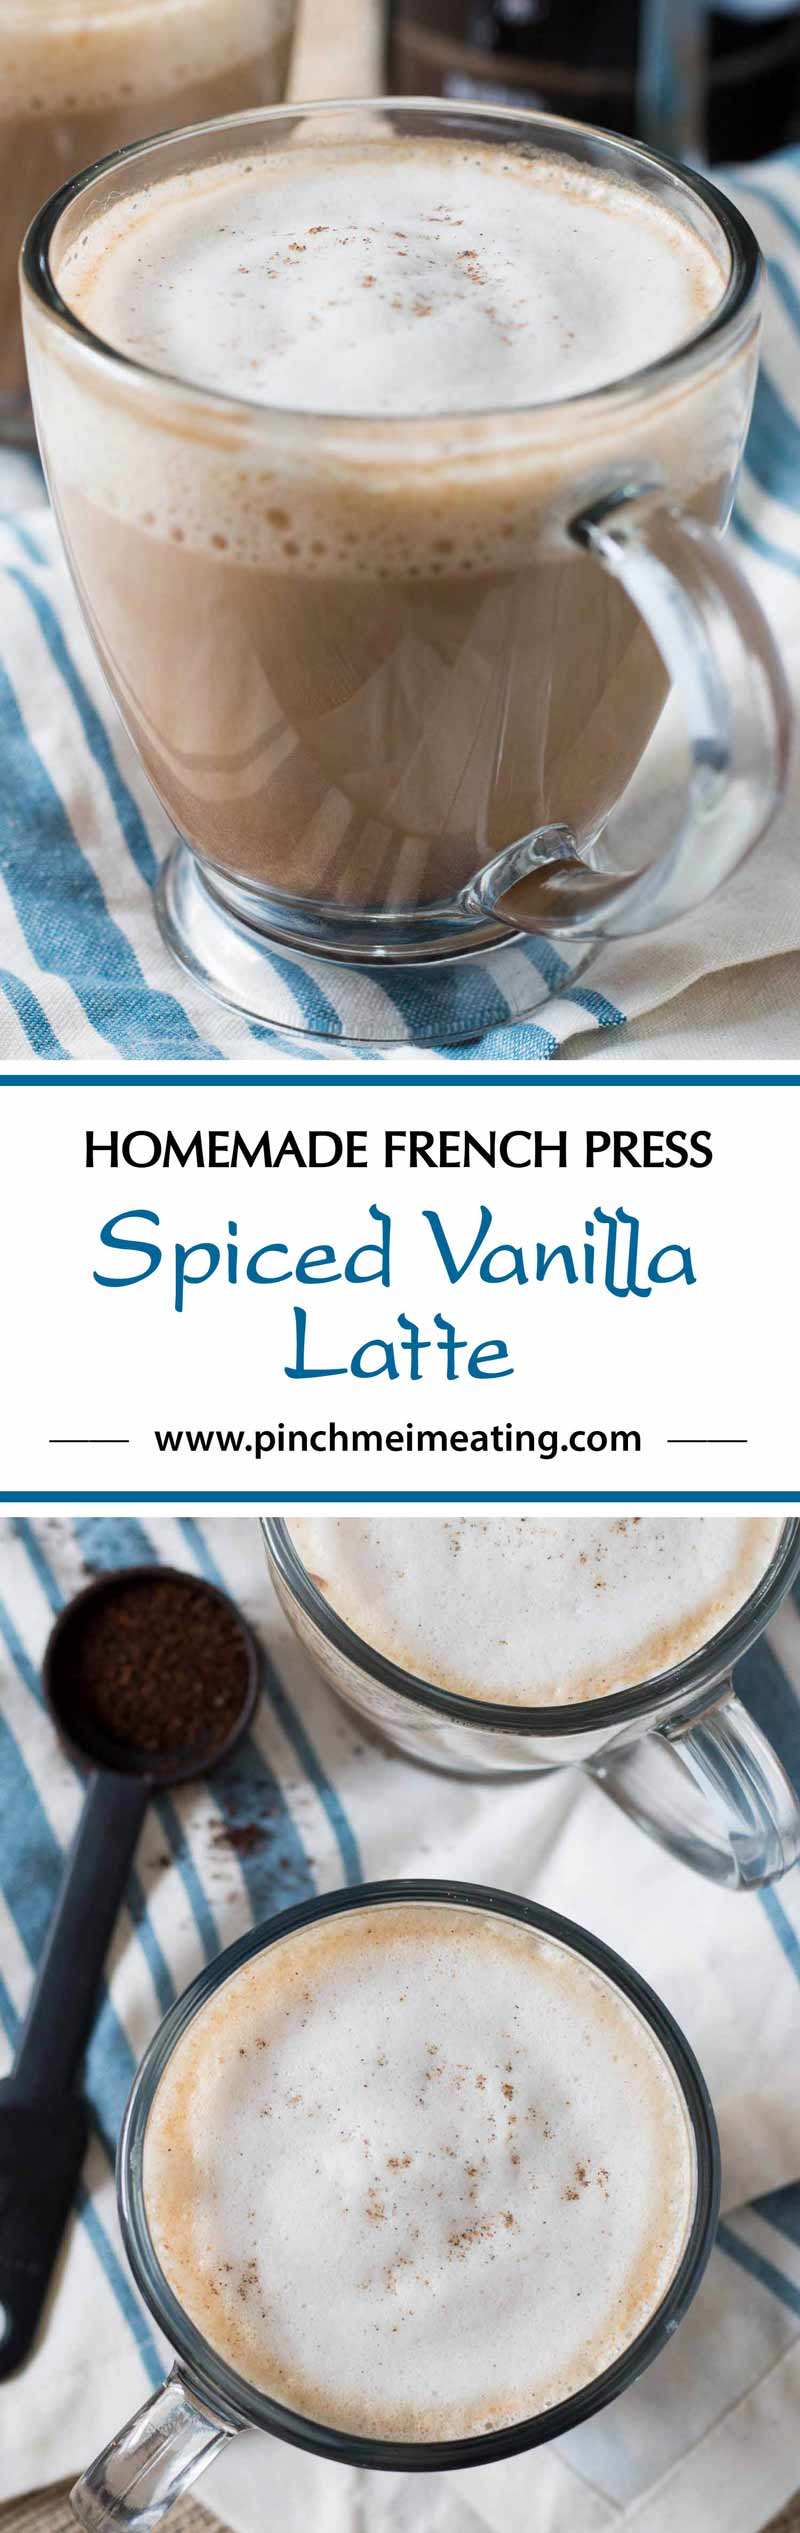 This spiced vanilla latte with a hint of cardamom and cinnamon is a simple, sophisticated coffeehouse style drink you can make at home using your French press! #CoffeehouseBlend #ad